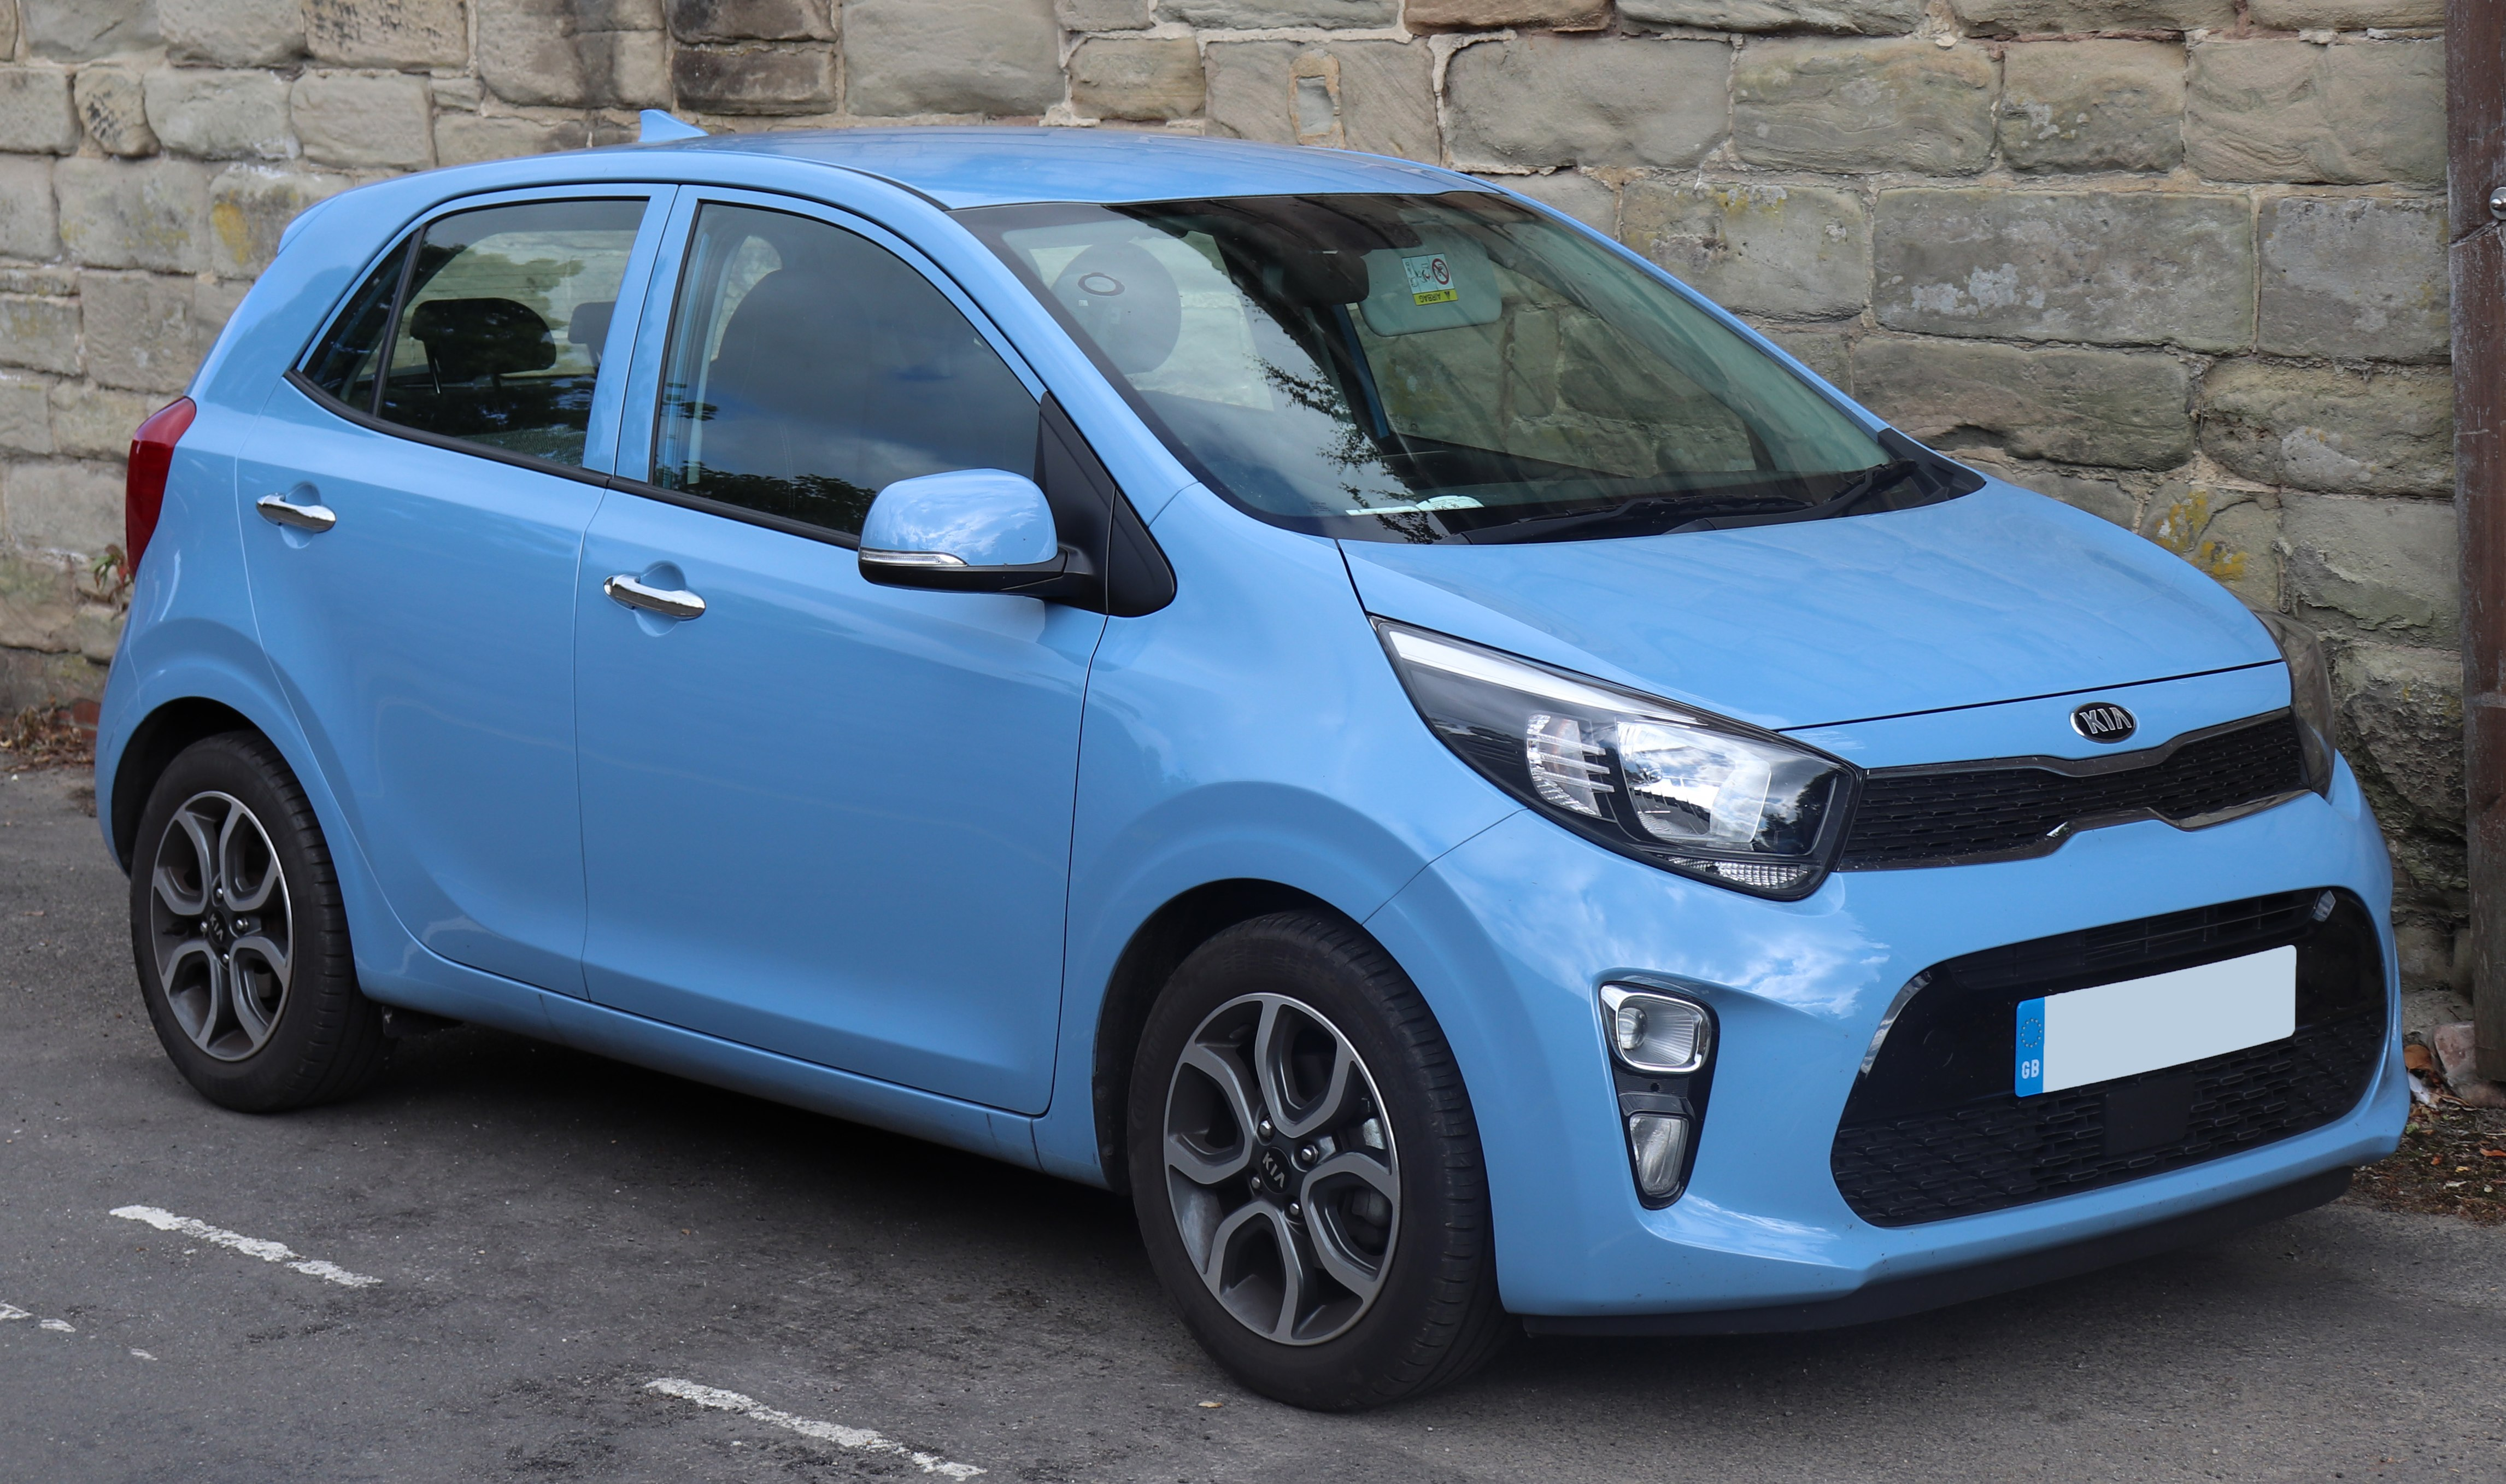 Kia Picanto - The complete information and online sale with